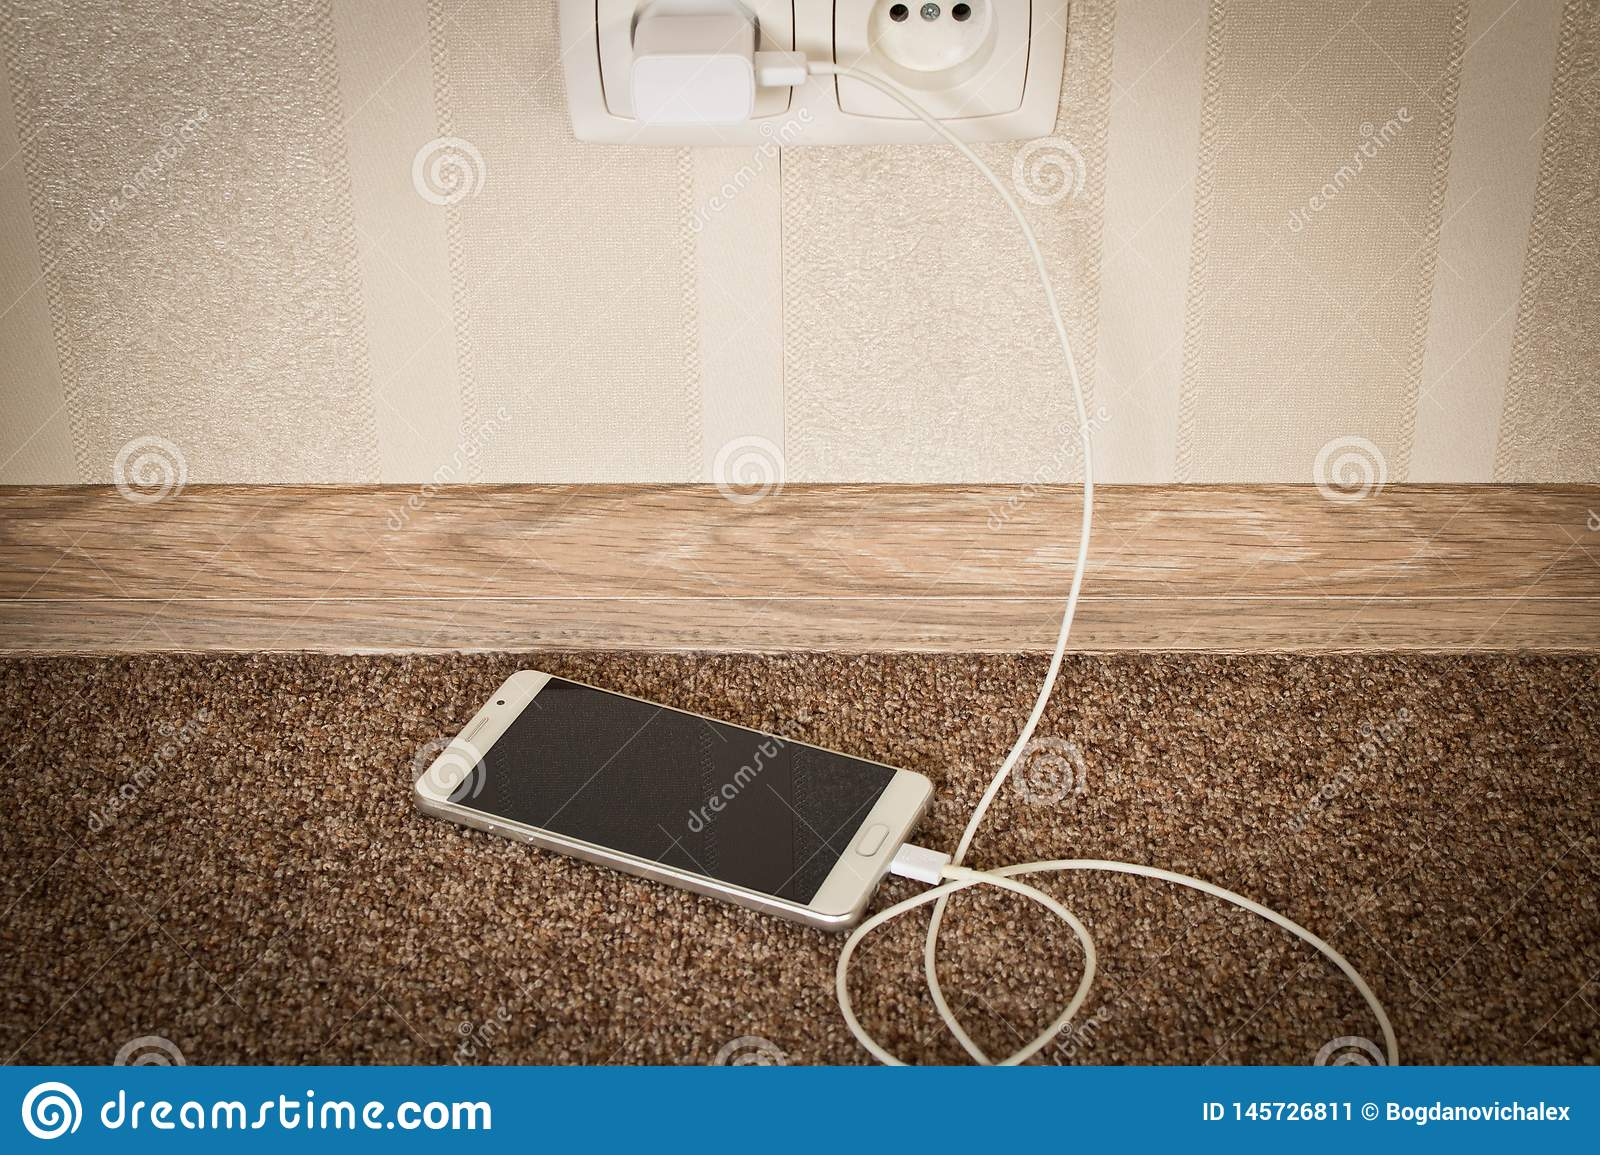 White mobile phone charging. Smartphone on charge